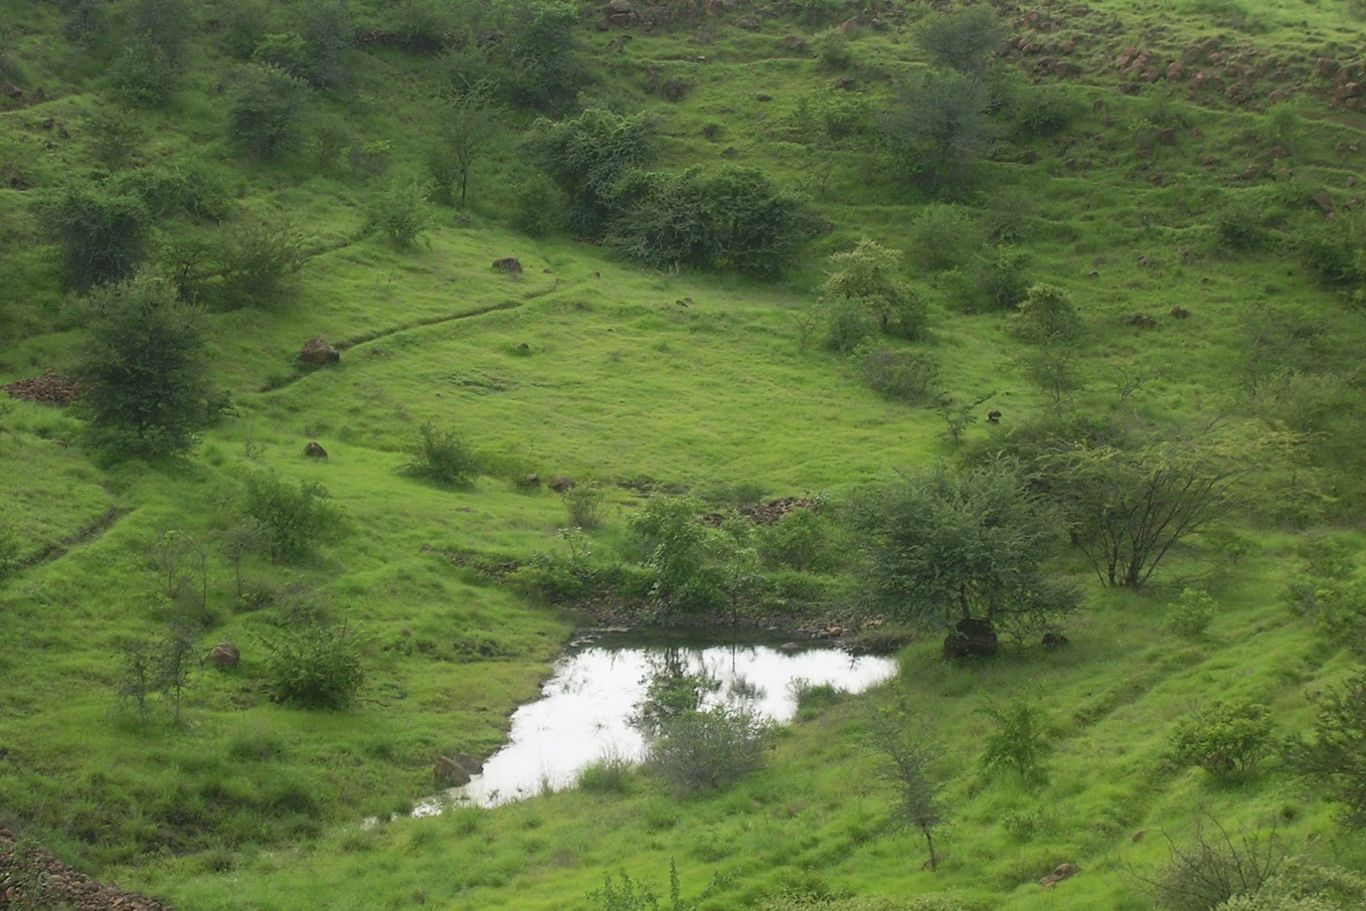 Lush green landscape with rolling hills, trees and a pond in Lamkani, India.